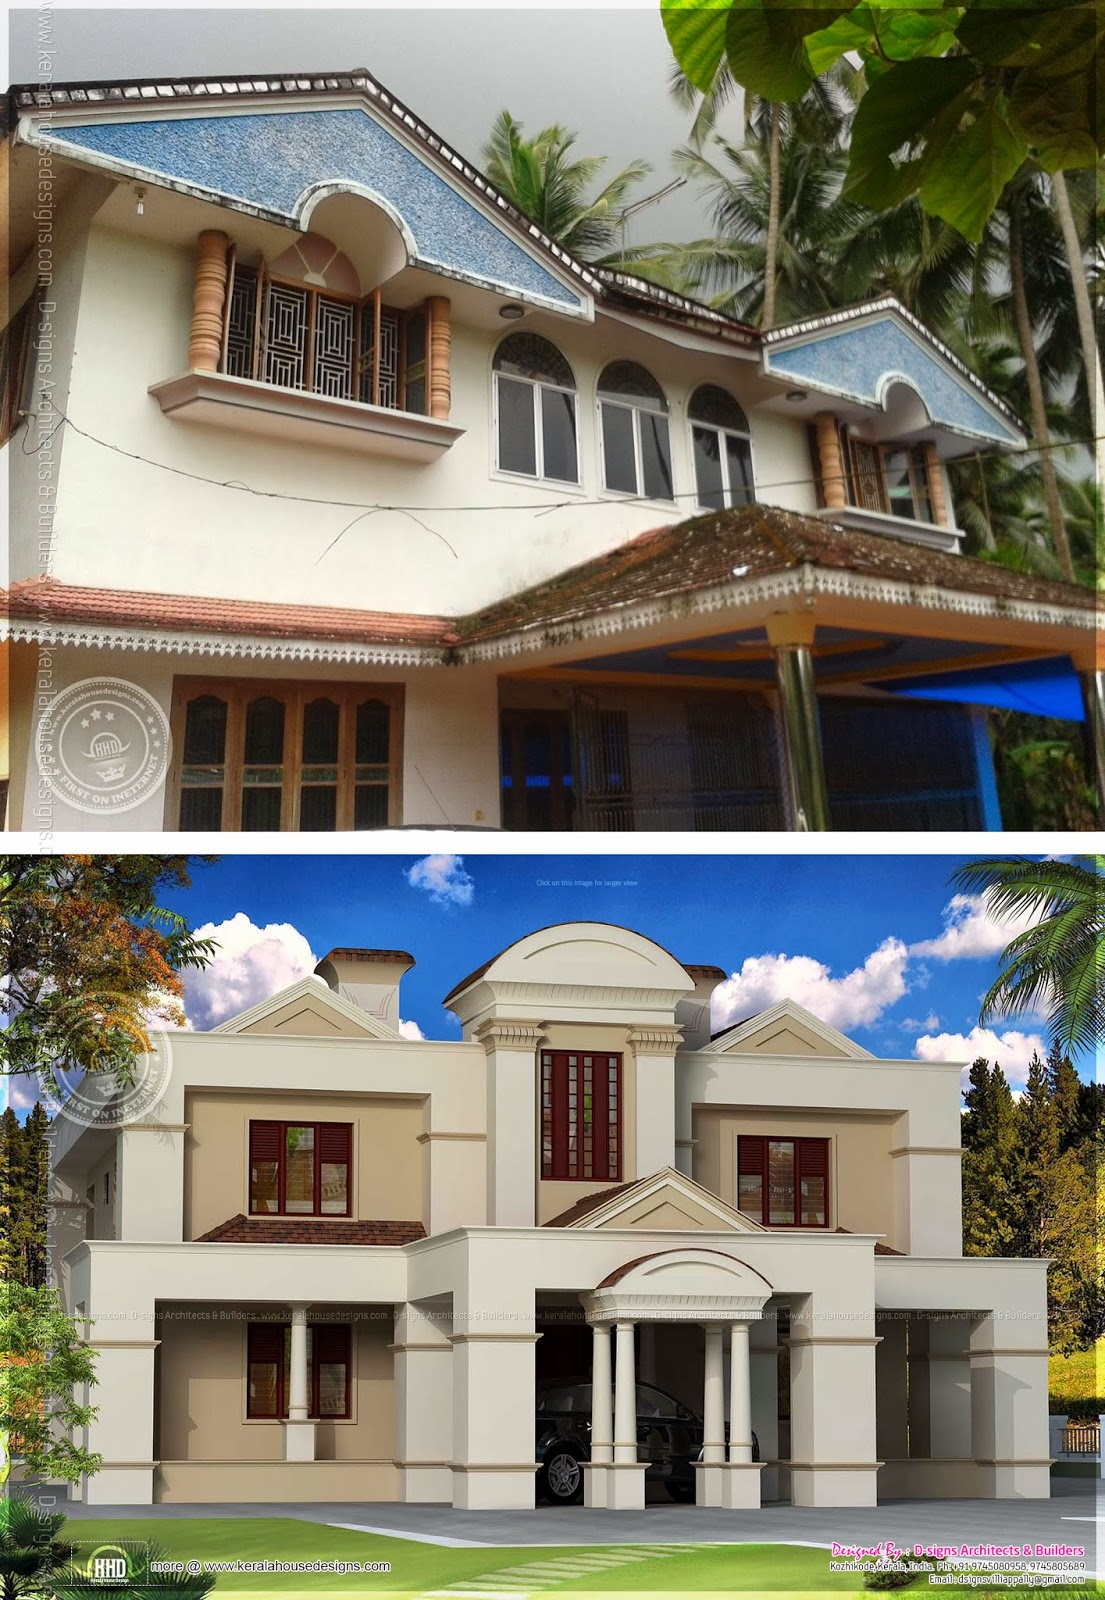 Traditional old house renovation plan to colonial style for Renovated homes before and after photos